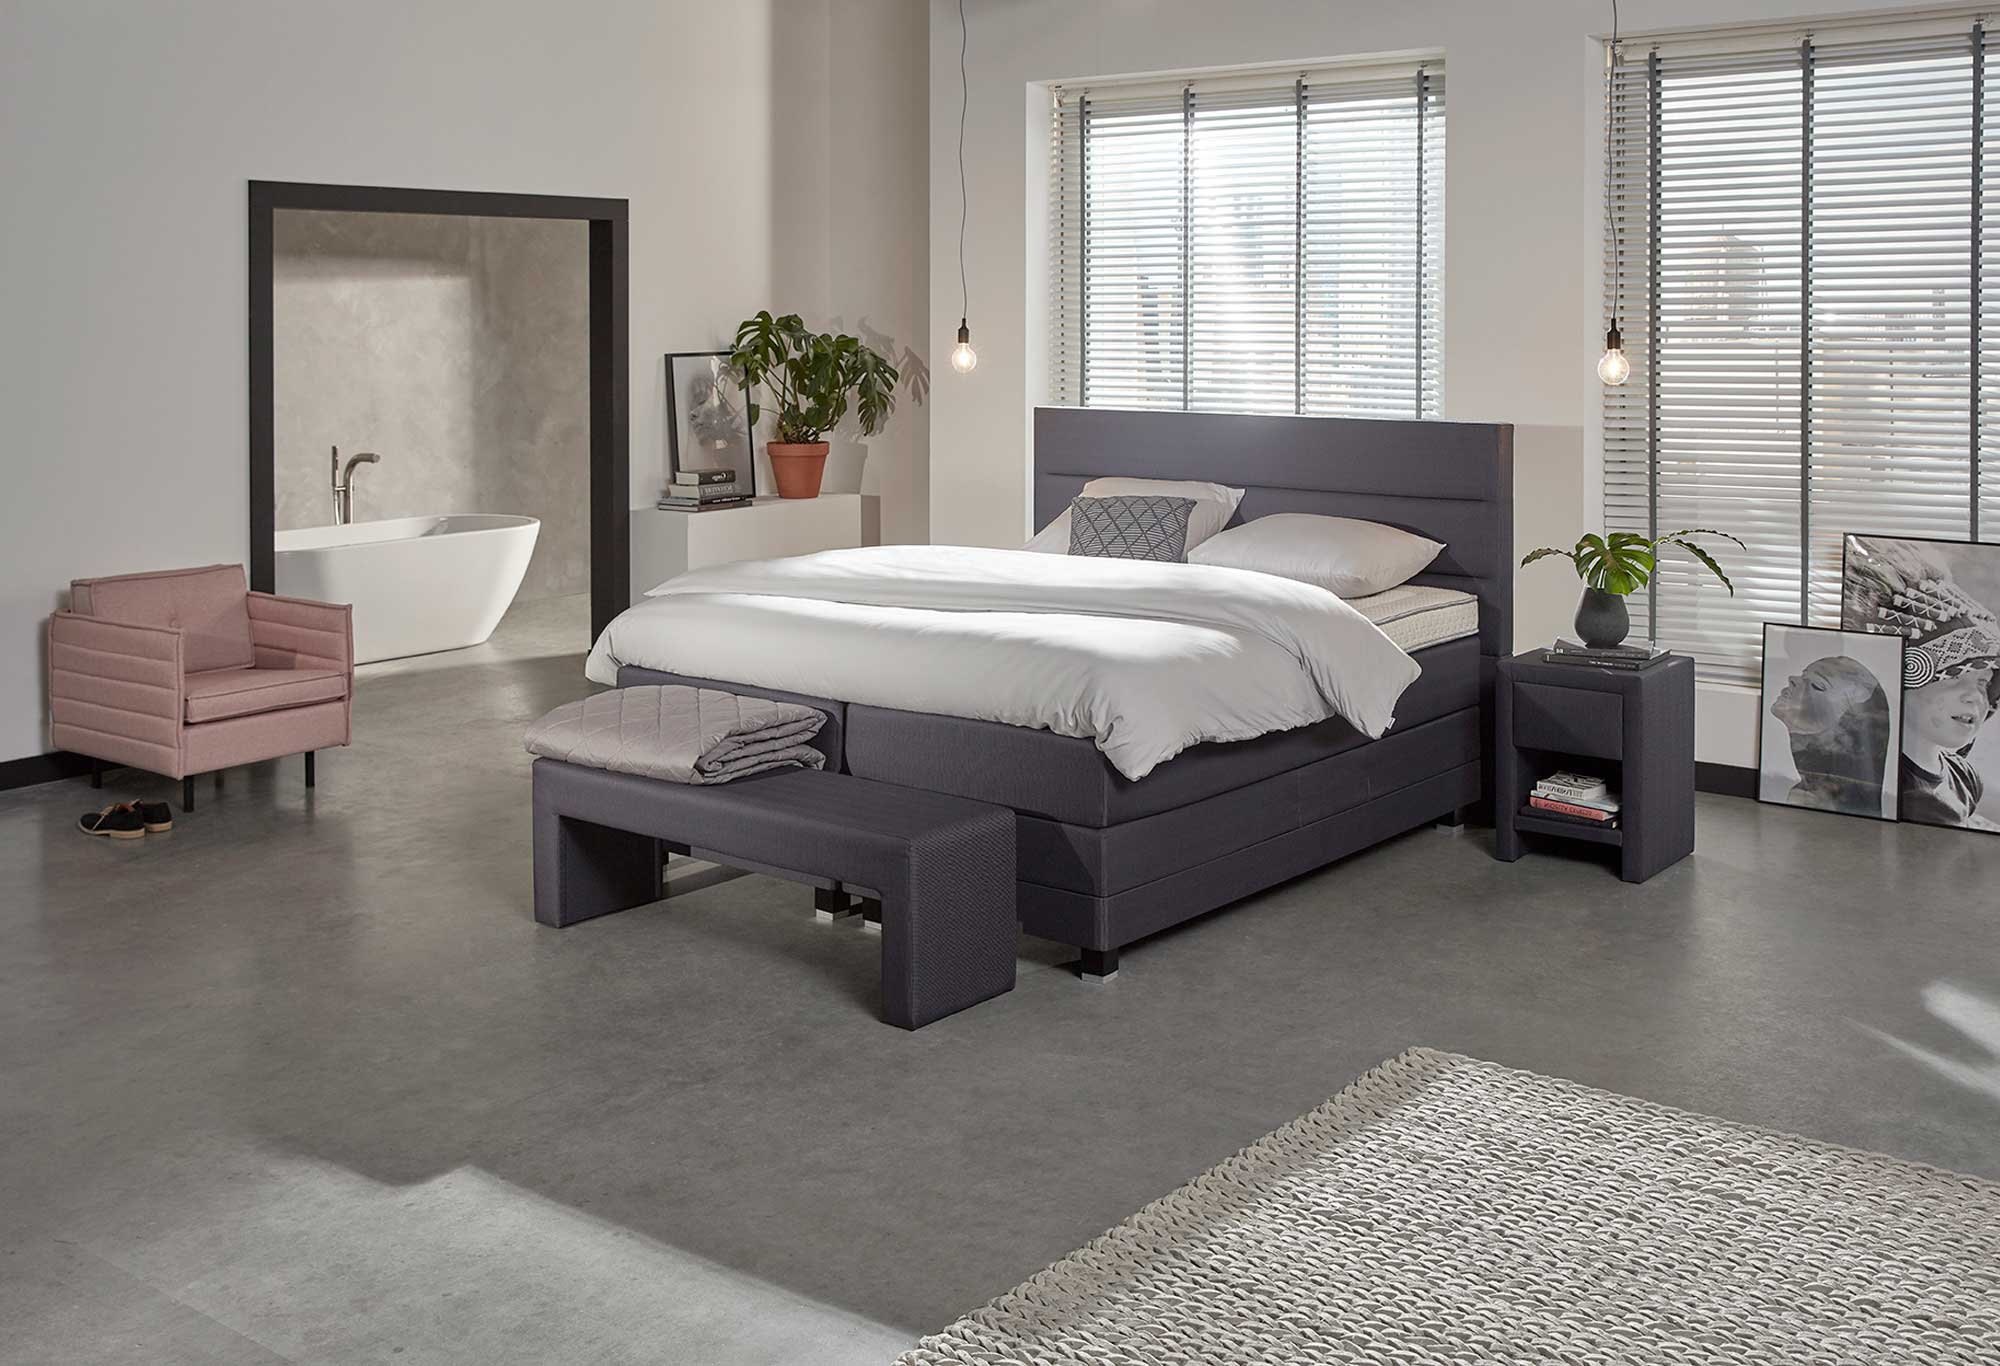 jubileumboxspring edition ii swiss sense gratis bezorging montage. Black Bedroom Furniture Sets. Home Design Ideas